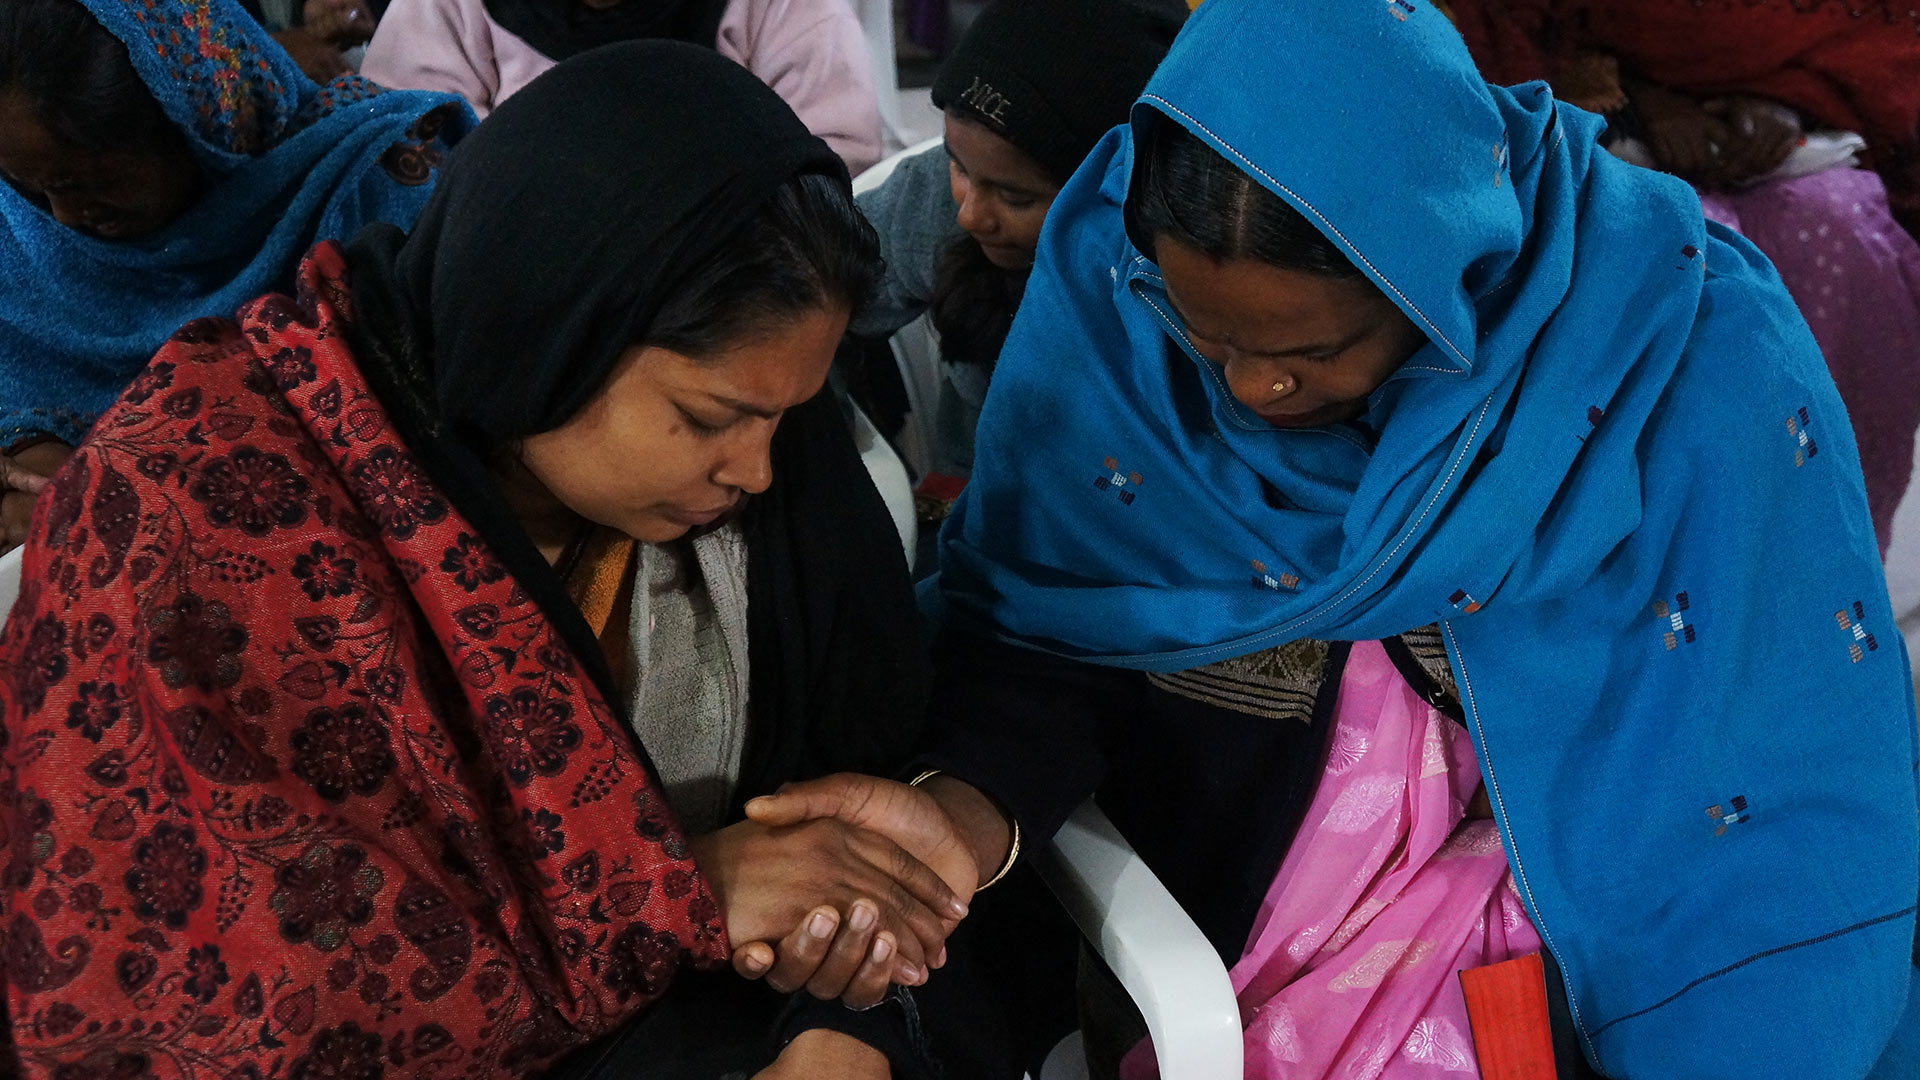 Women praying together and how you can pray for an upcoming mission.